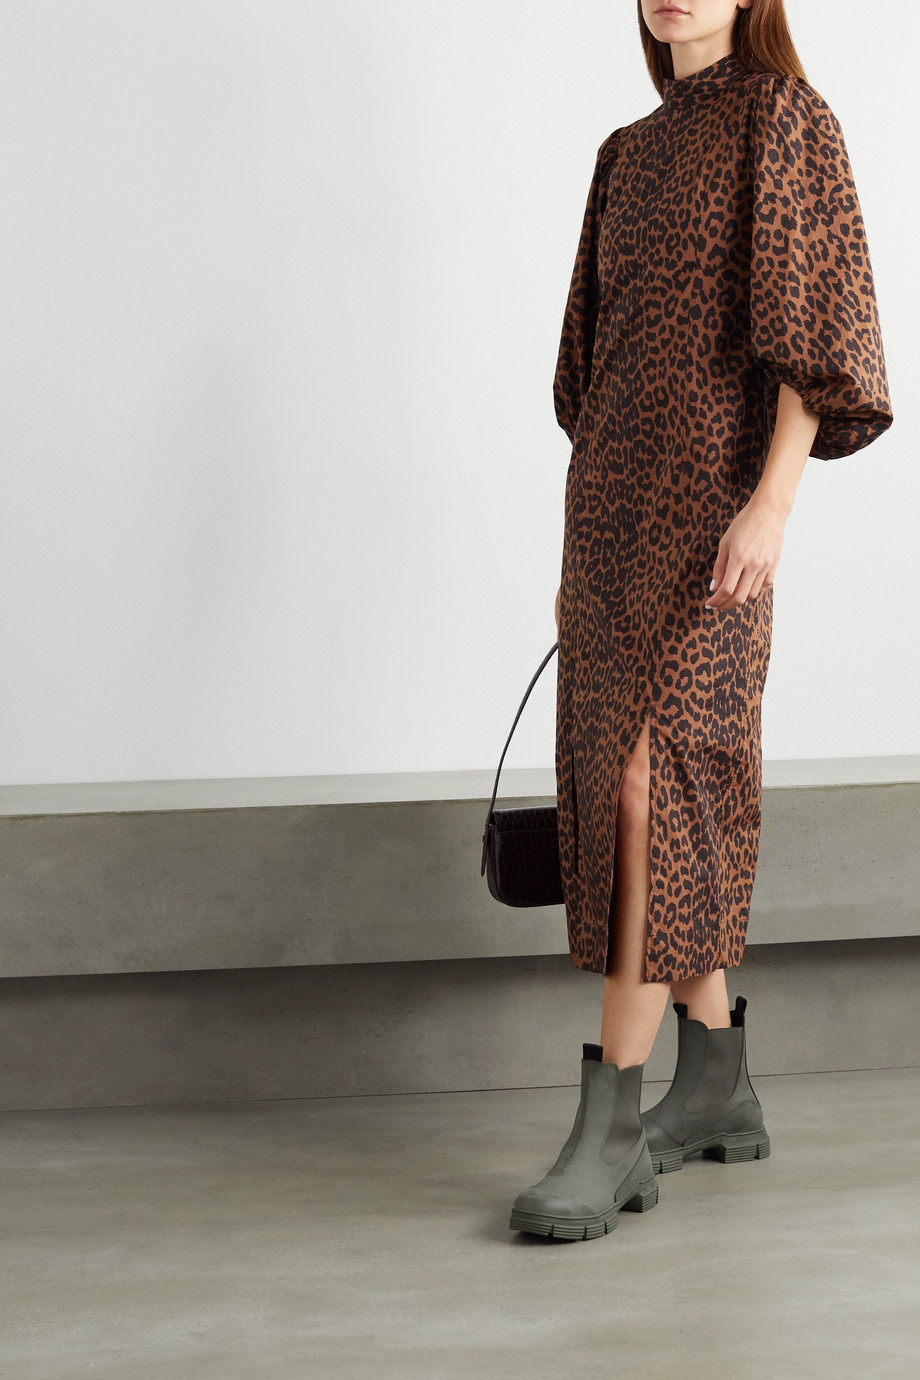 GANNI + NET SUSTAIN leopard-print organic cotton-poplin midi dress